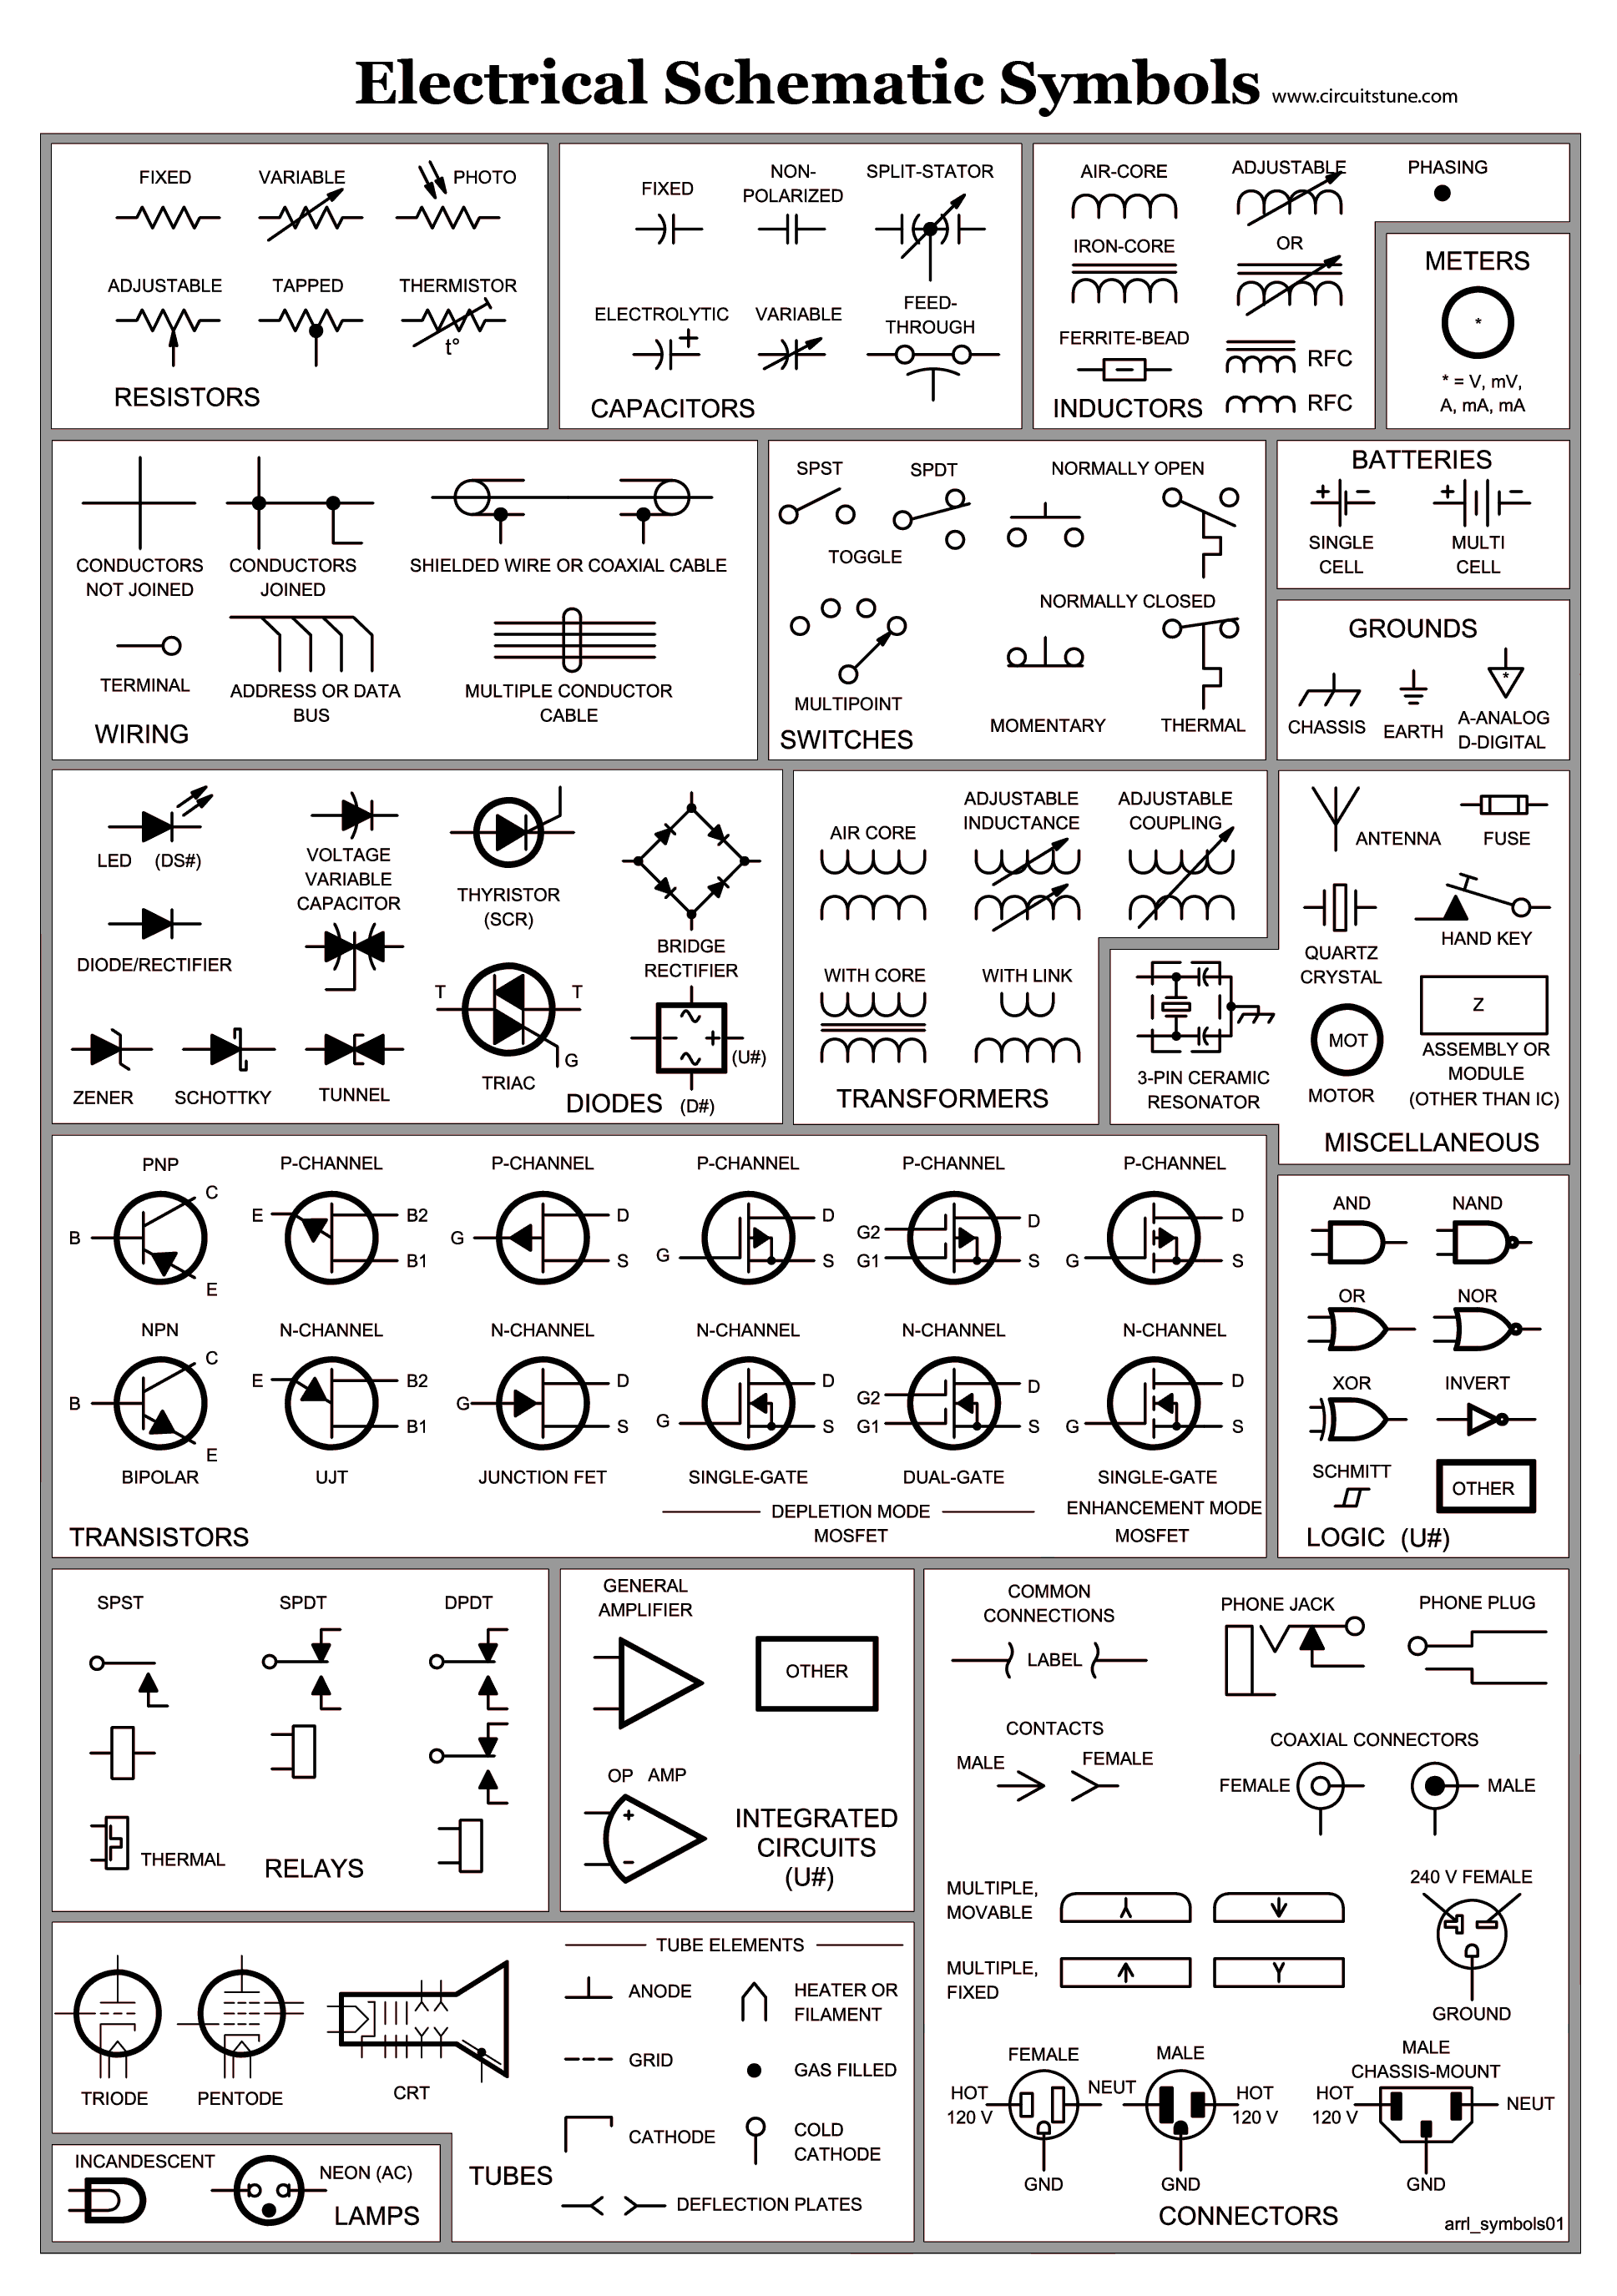 Unique Wiring Diagram Symbols Meanings #diagrams #digramssample  #diagramimages | Electrical schematic symbols, Electrical wiring diagram, Electrical  symbolsPinterest